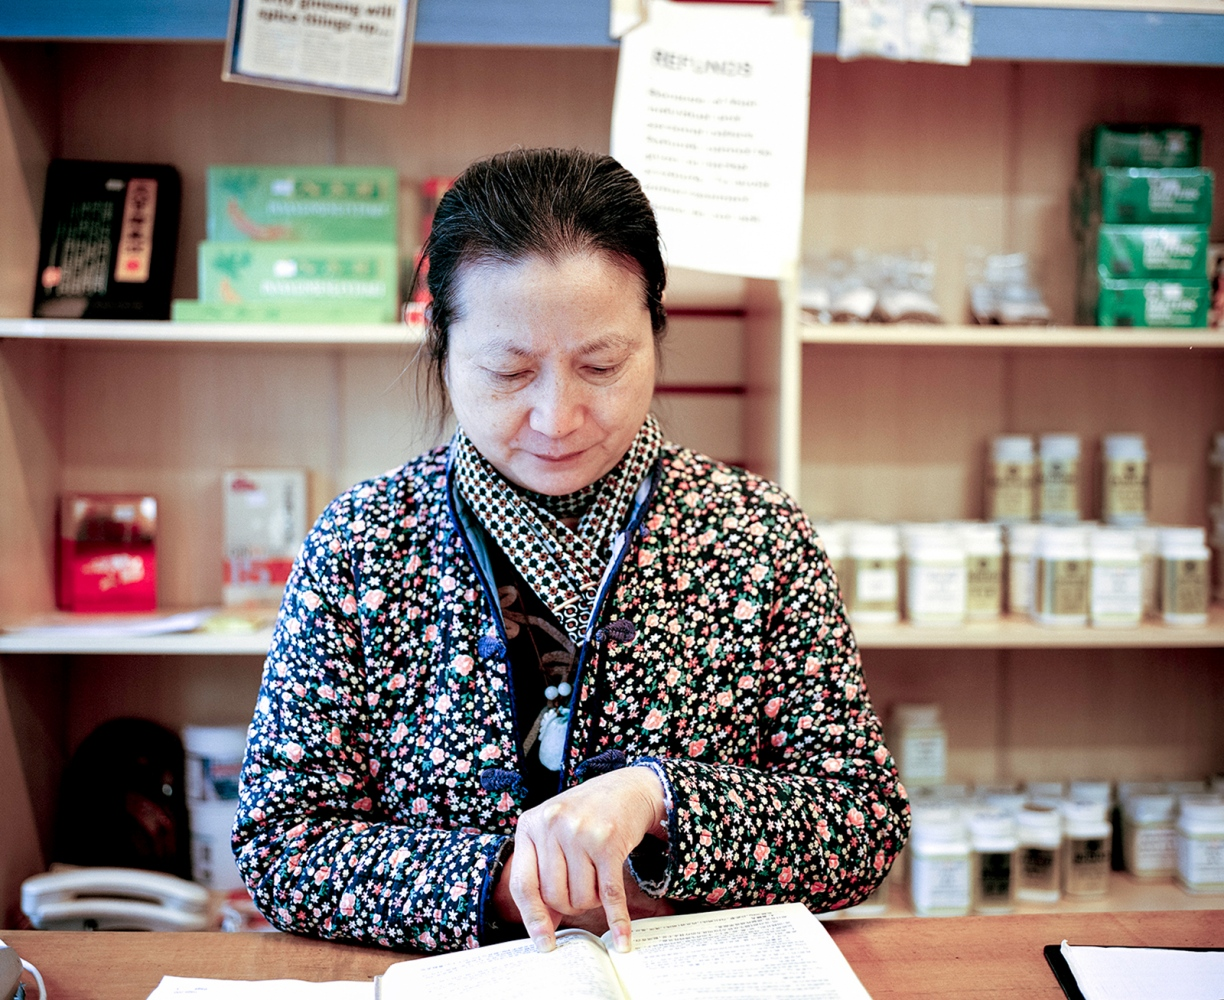 Ling Han owns Chang Jiang Chinese Medicines, which has been on the road for twenty years. Ling tells me she is happy to have a photograph taken as she likes to support the younger generation.